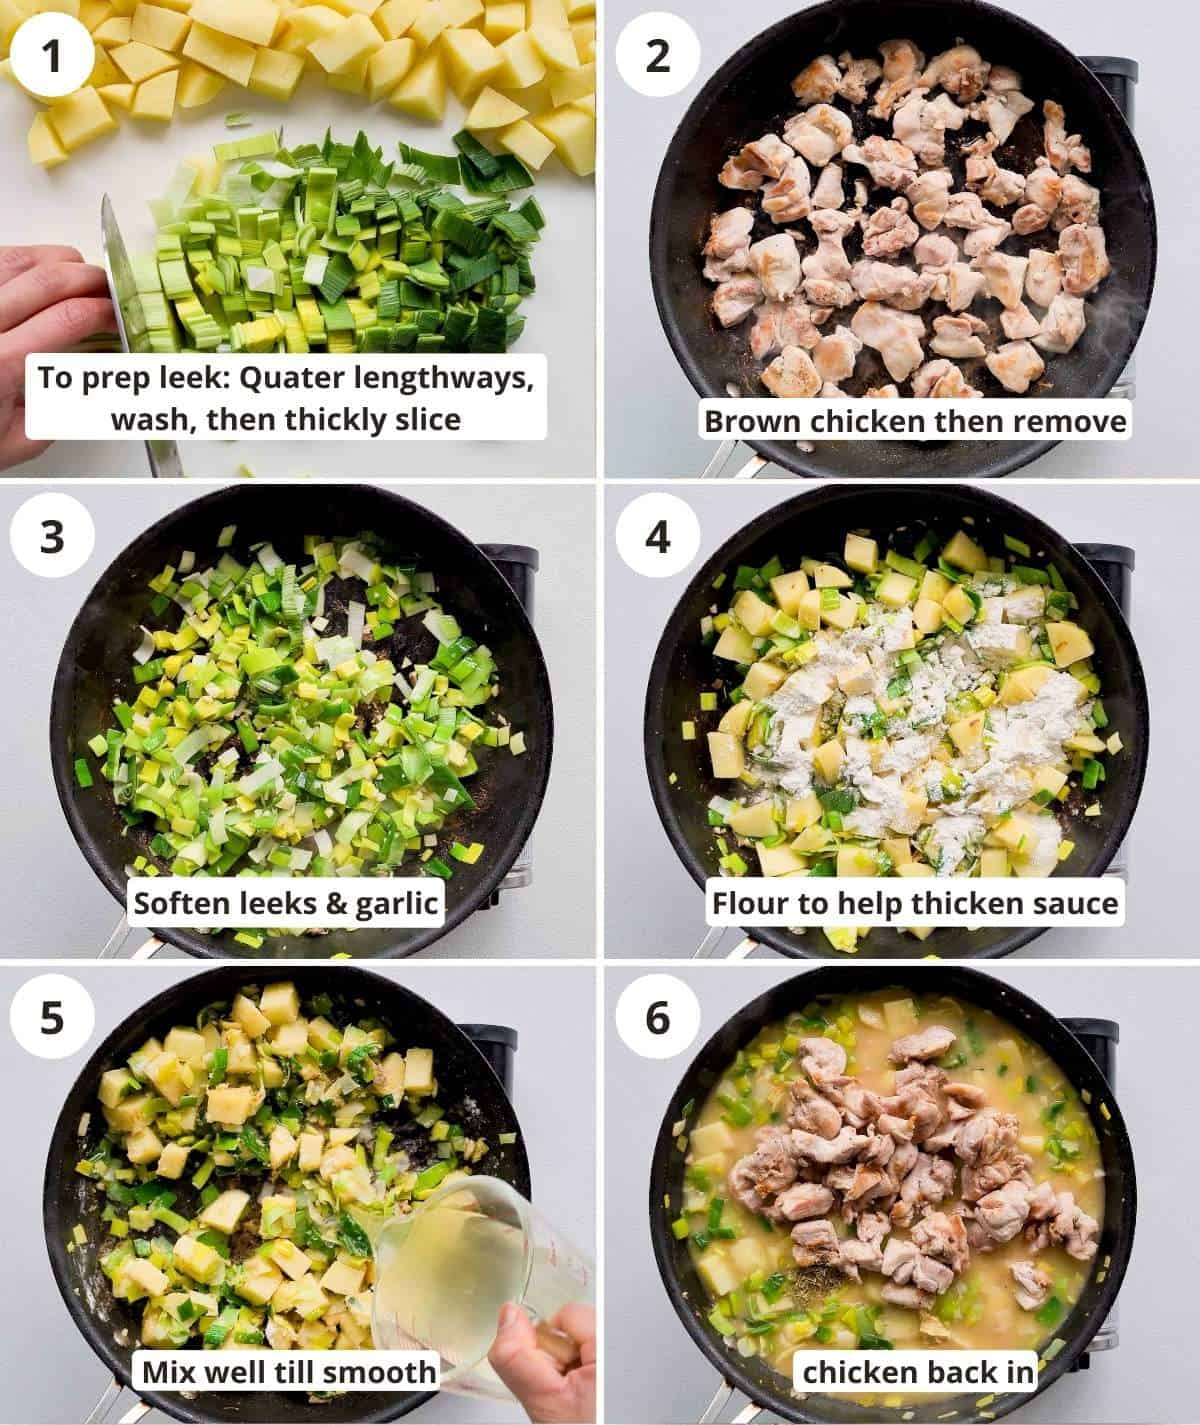 6 step by step instructions collage for making the chicken pie filling